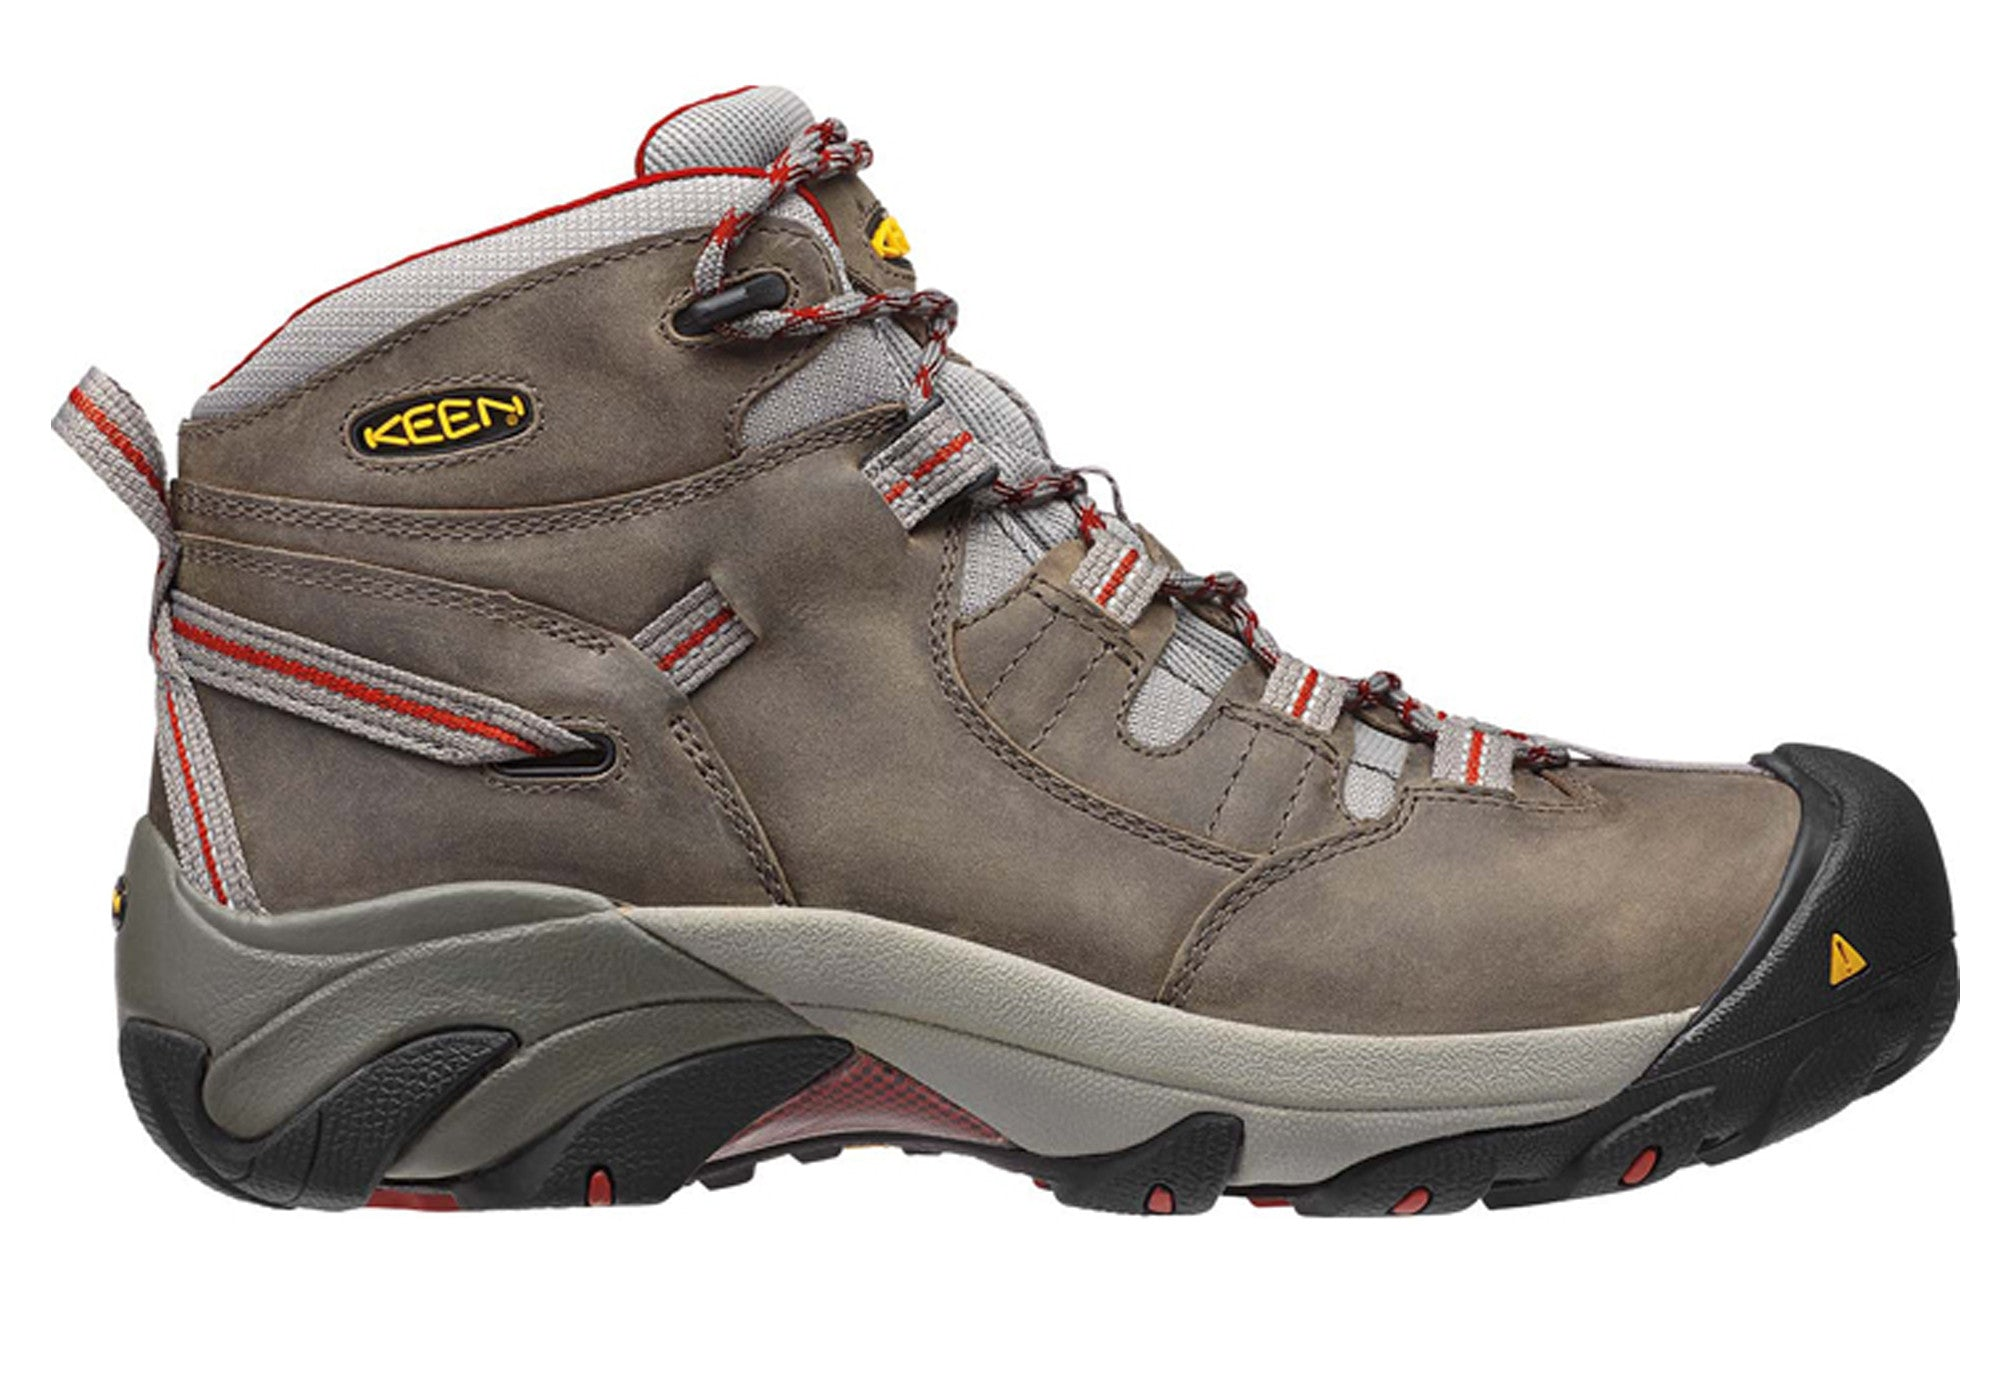 78dda8f07f Home Keen Detroit Mid Mens Steel Toe Lace Up Wide Fit Boots. Gargoyle Bossa  Nova; Brindle ...